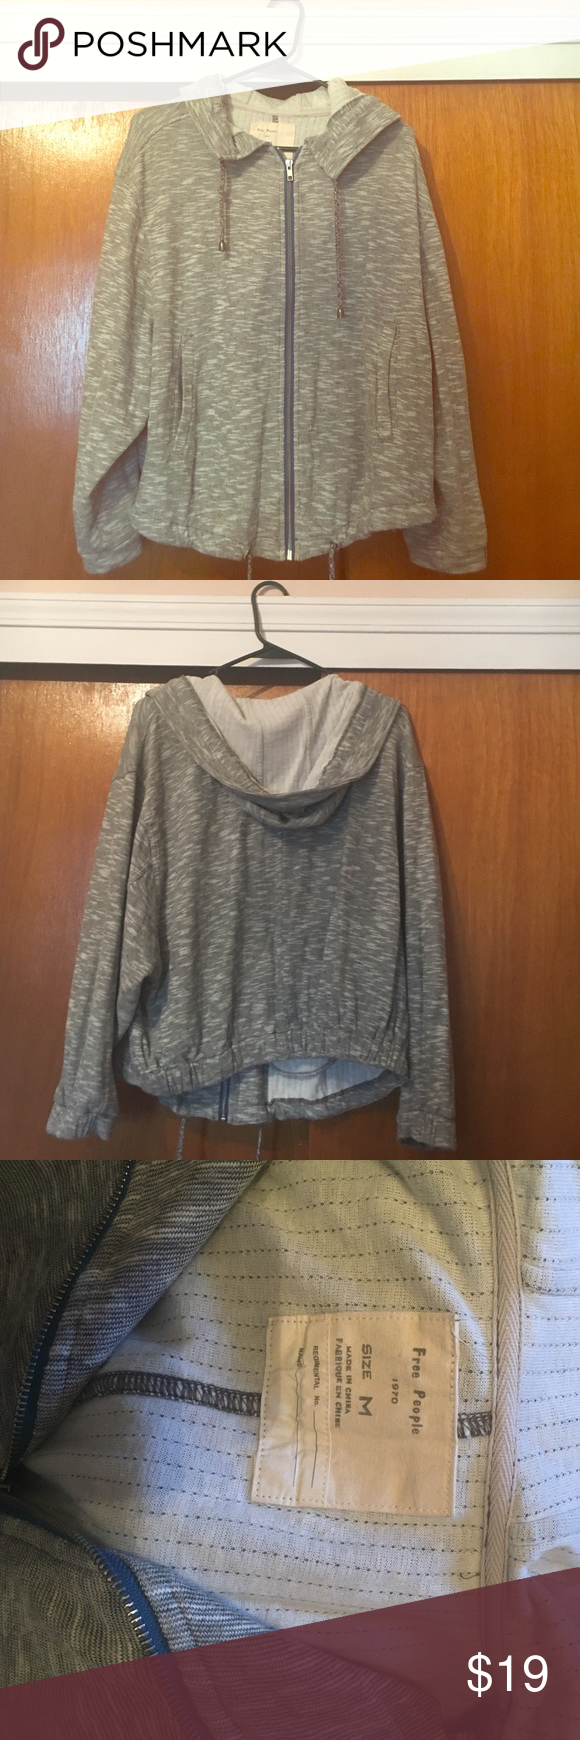 Super cozy lightweight Free People zip up hoodie Love this sweatshirt, just trying to free space in my closet. Have only won a handful of times. Perfect for the fall and lounging! Free People Sweaters